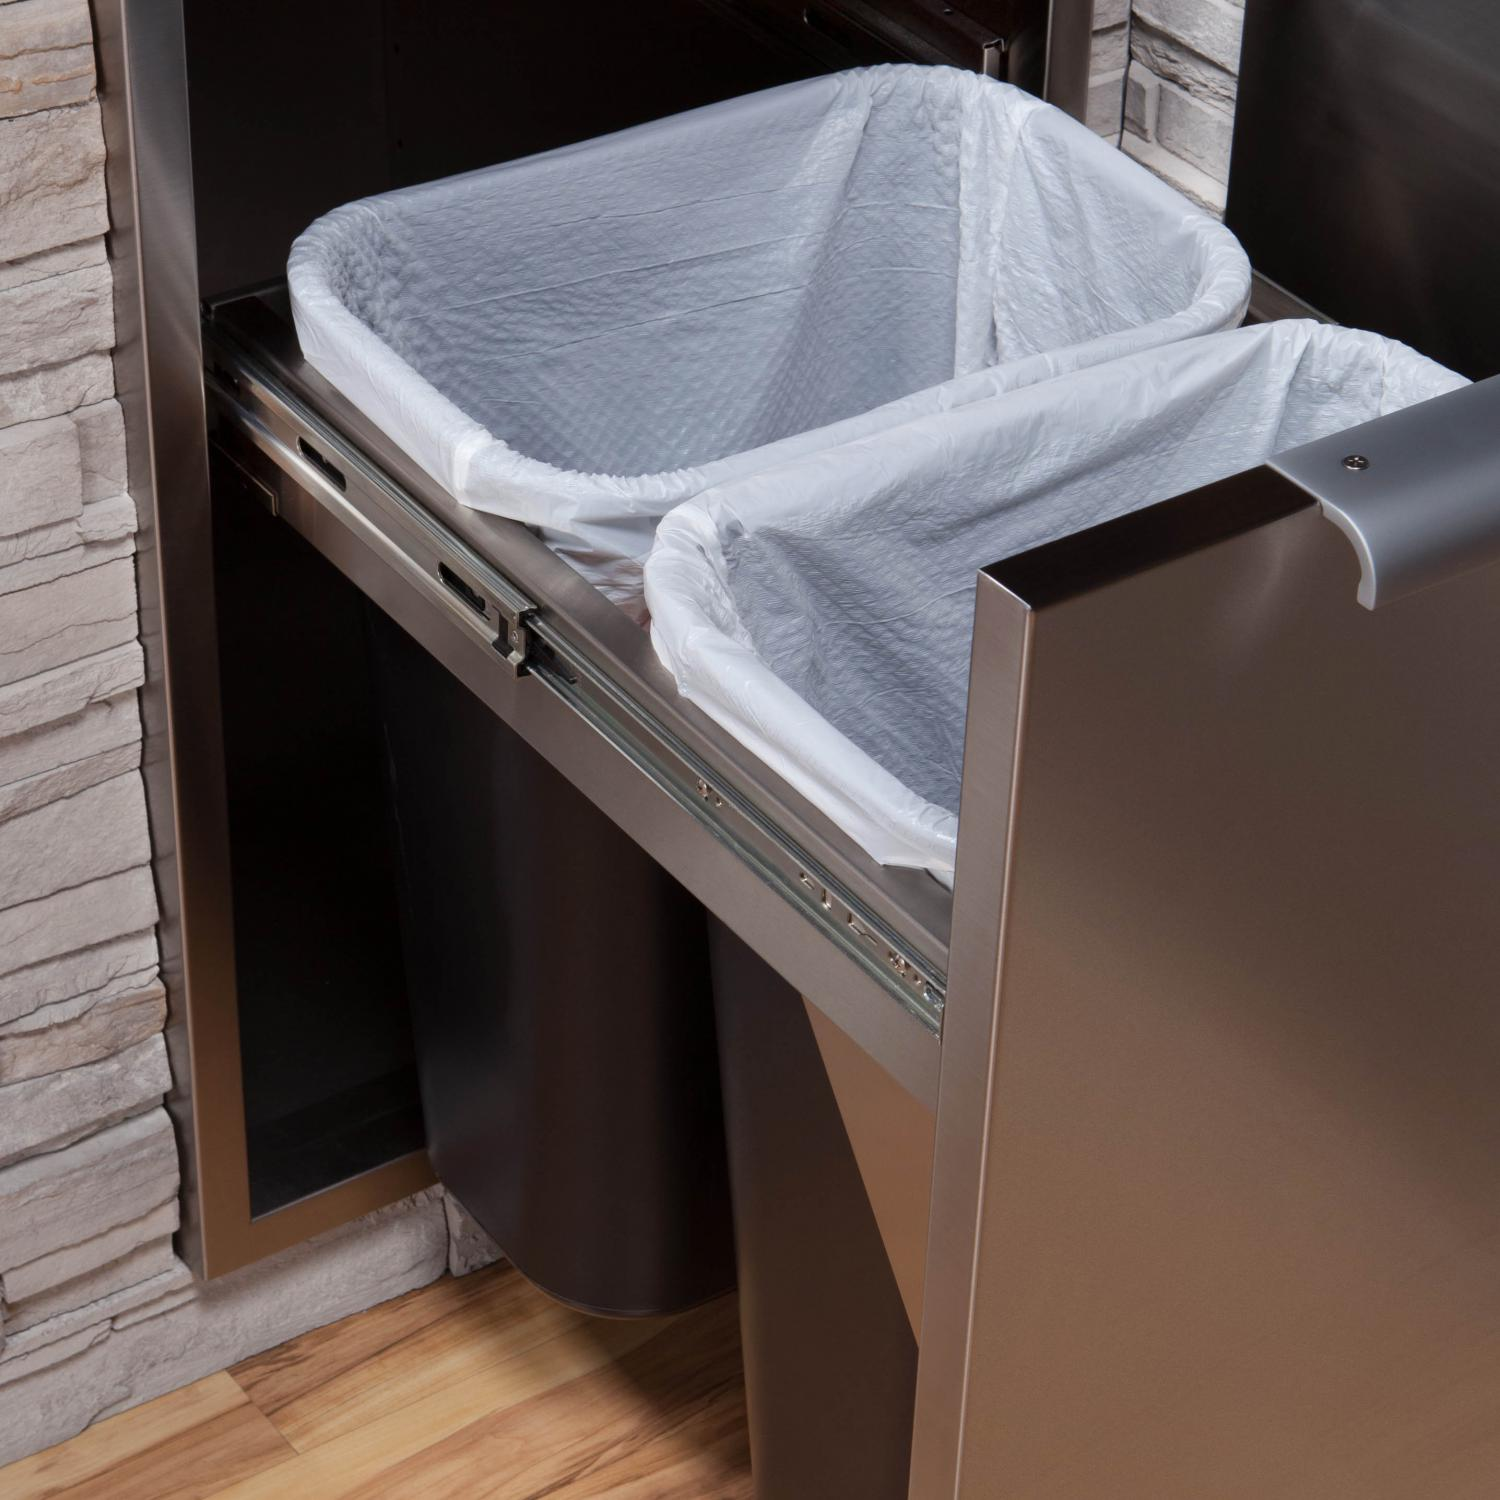 Dcs 20 Inch Roll Out Trash Recycle Bin With Soft Close